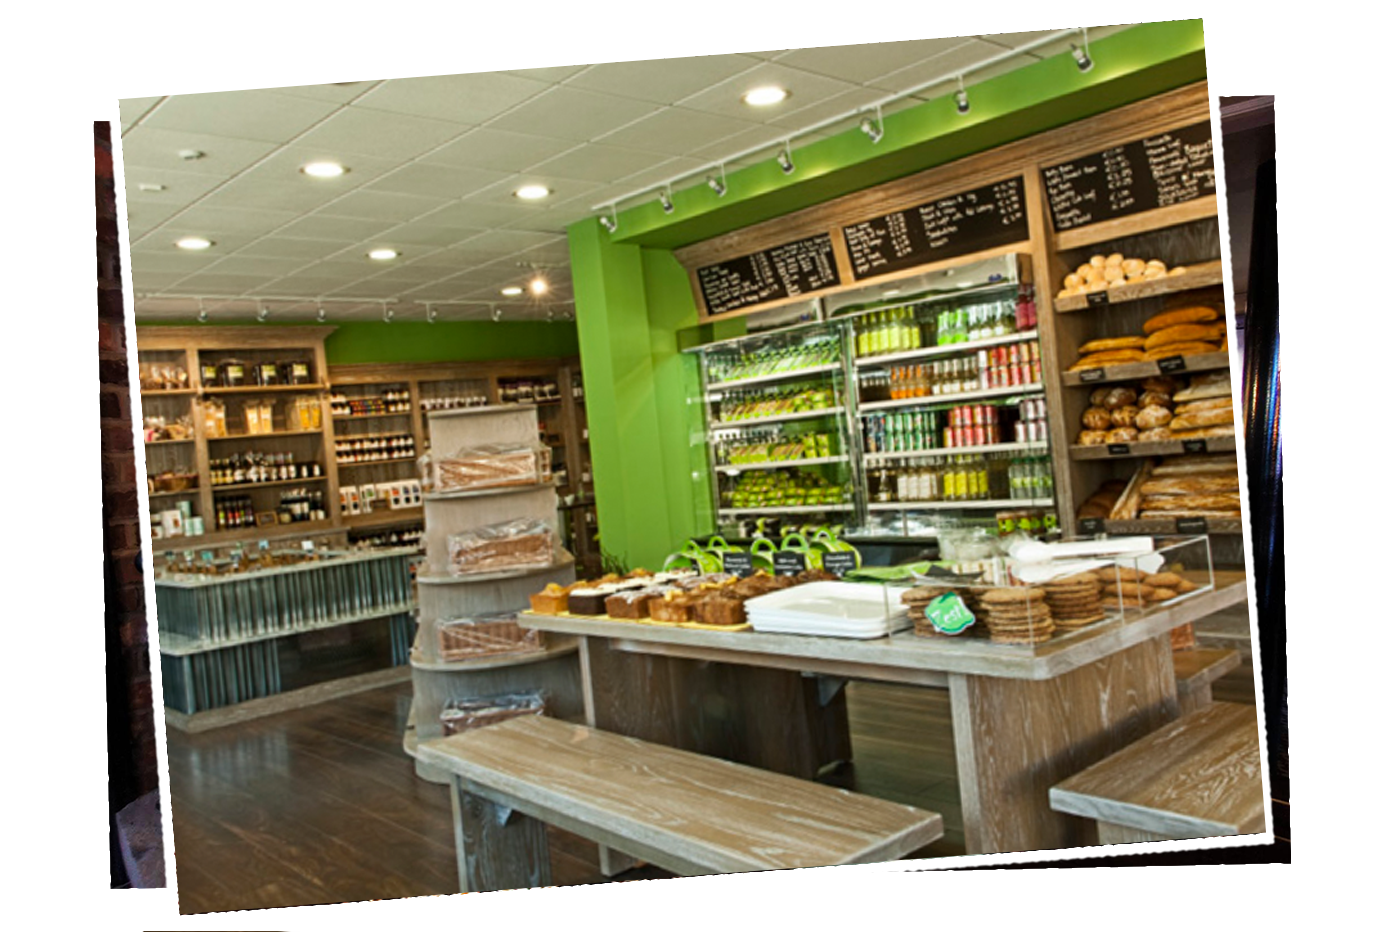 Zest counter and shelves